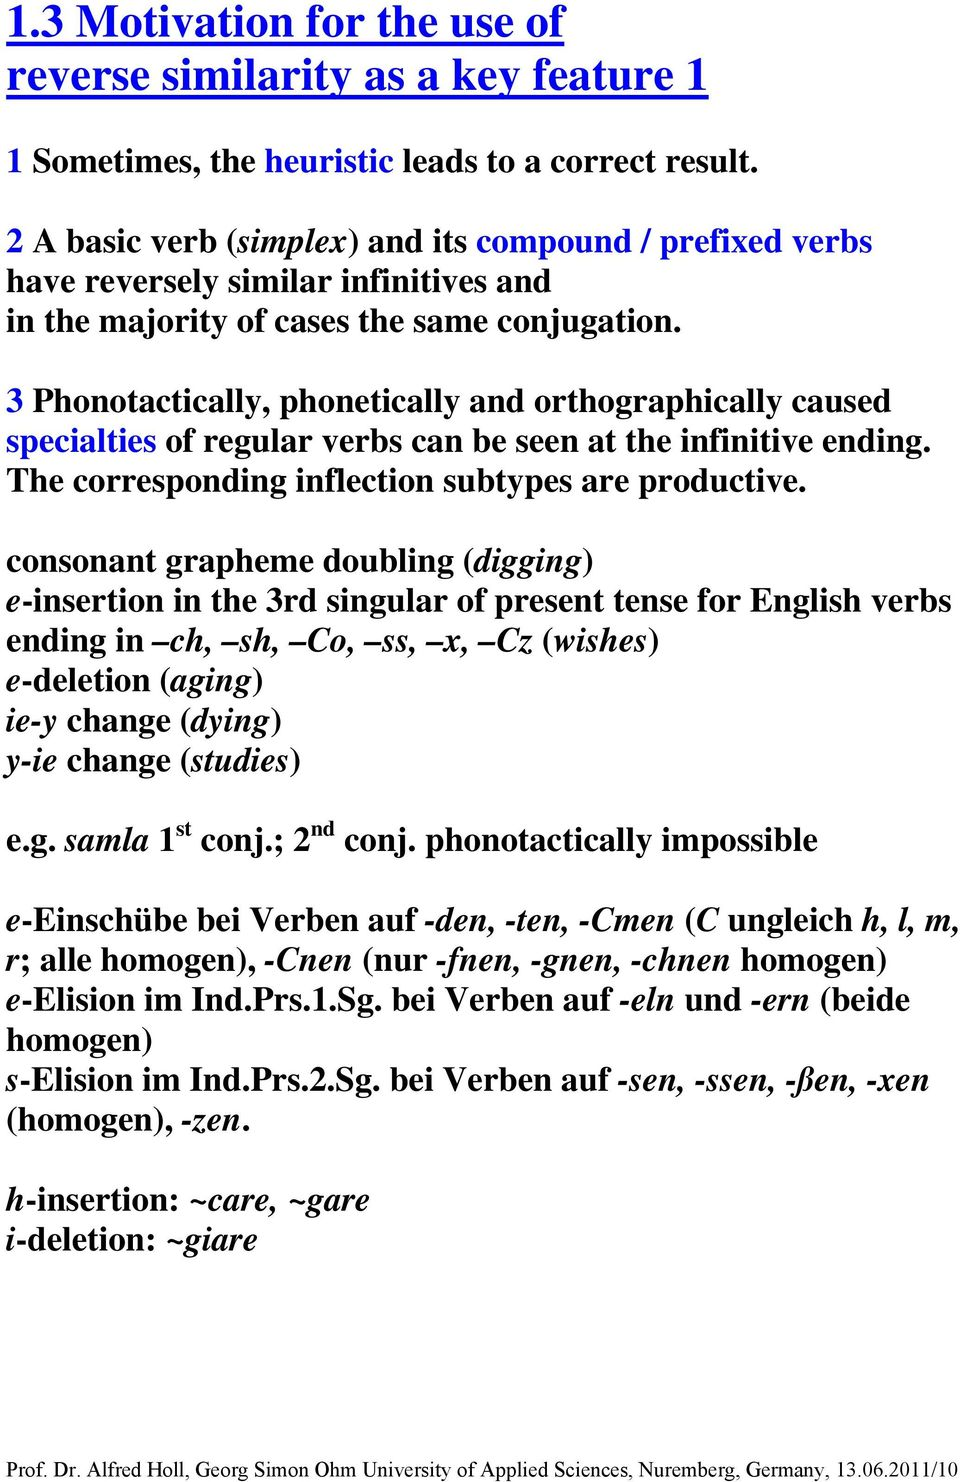 3 Phonotactically, phonetically and orthographically caused specialties of regular verbs can be seen at the infinitive ending. The corresponding inflection subtypes are productive.